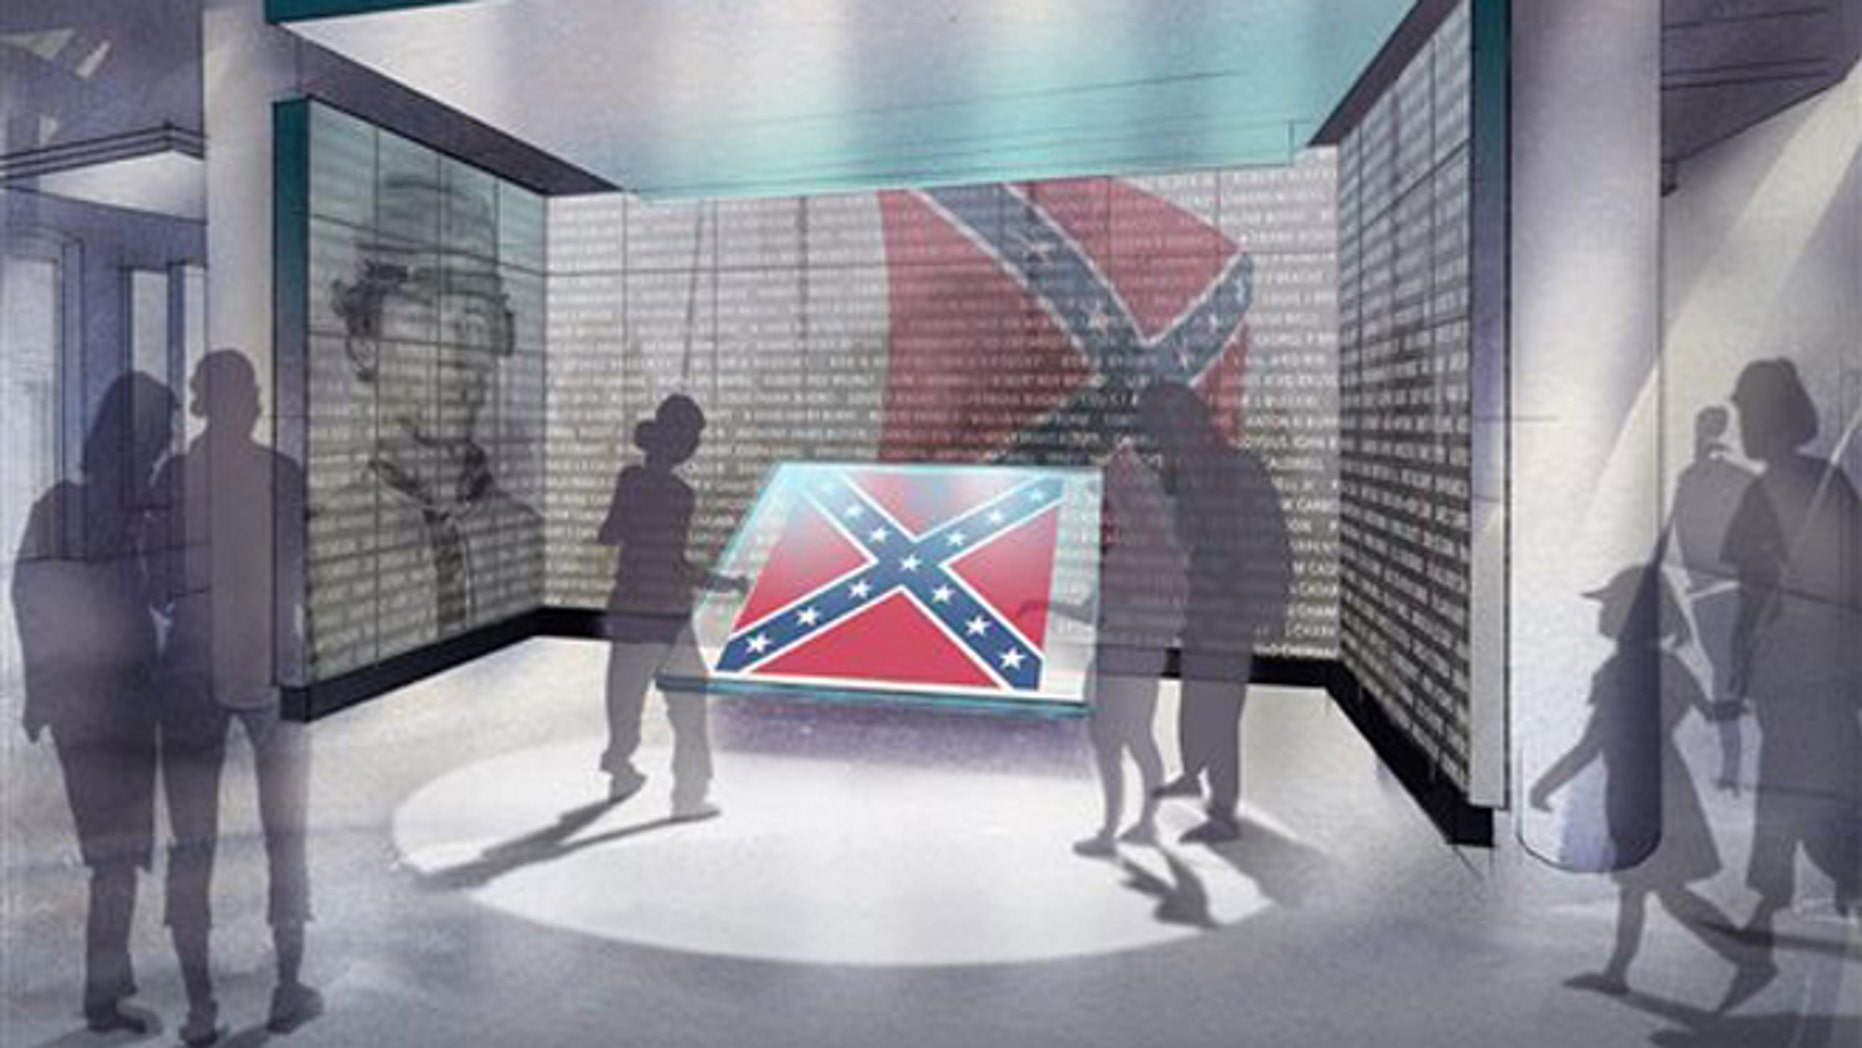 Dec. 3, 2015: This rendering made available by Haley Sharpe Design, shows the approved display design where the confederate flag that was removed from the South Carolina statehouse in the summer of 2015 will be shown.